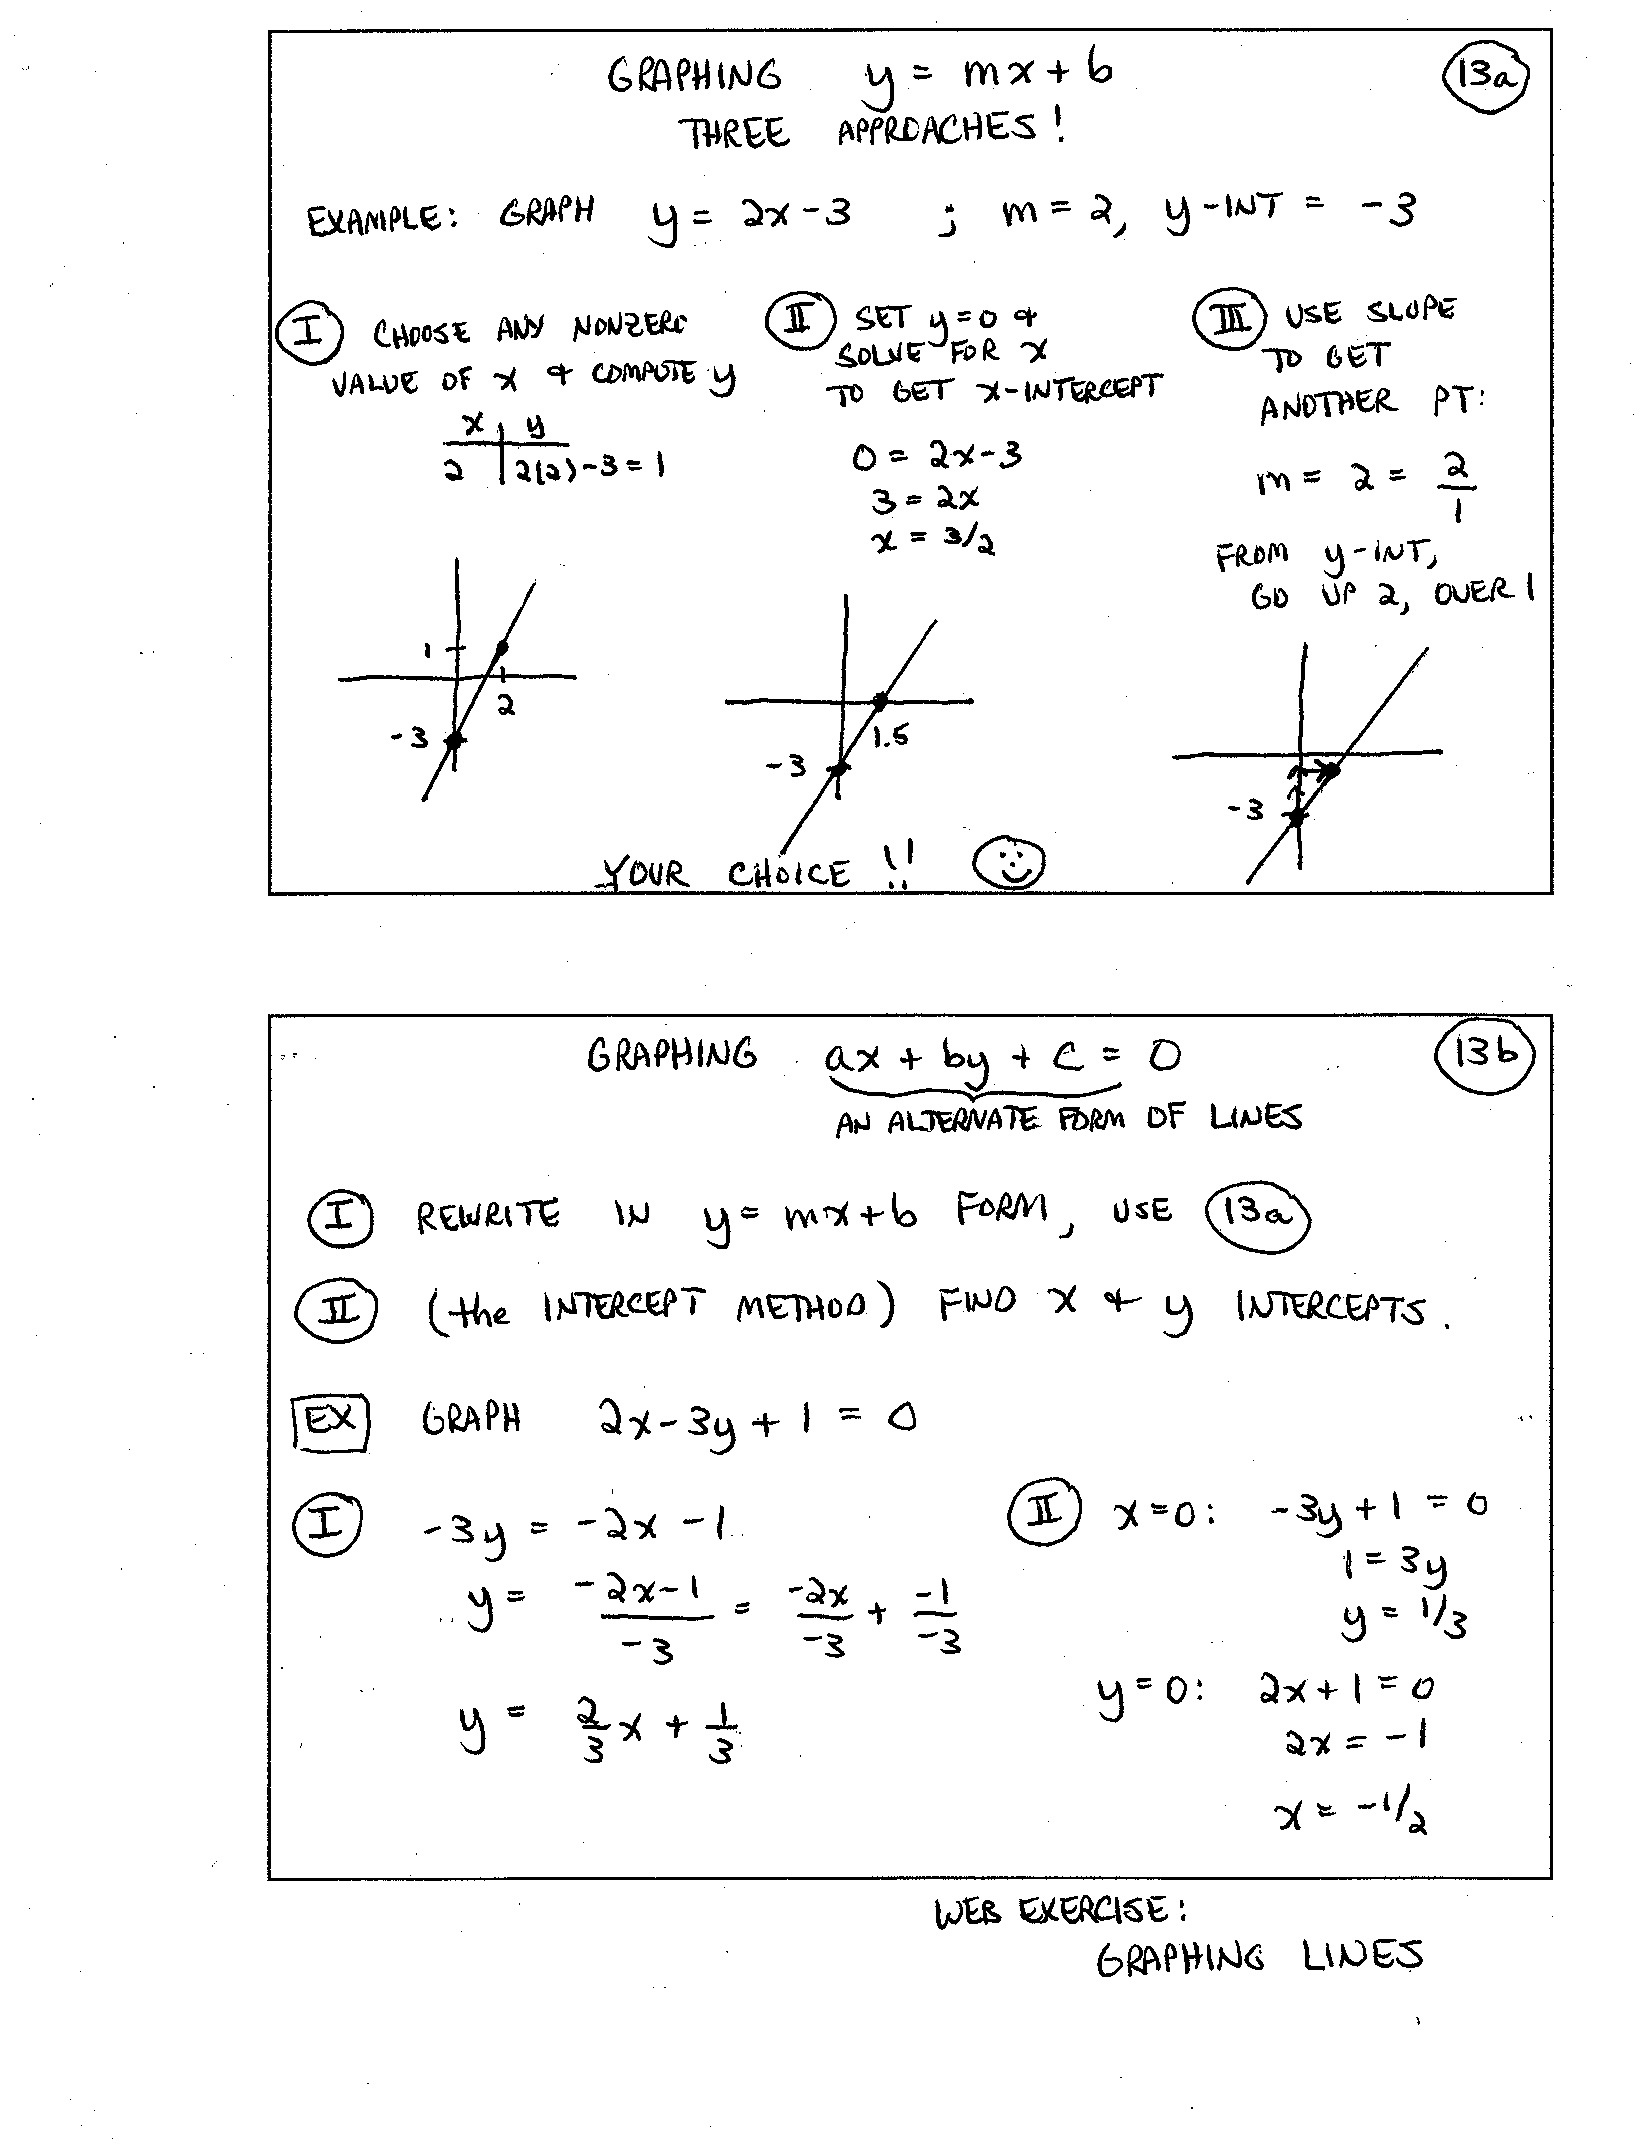 Graphing Lines In Y Mx B Form Worksheet Answers